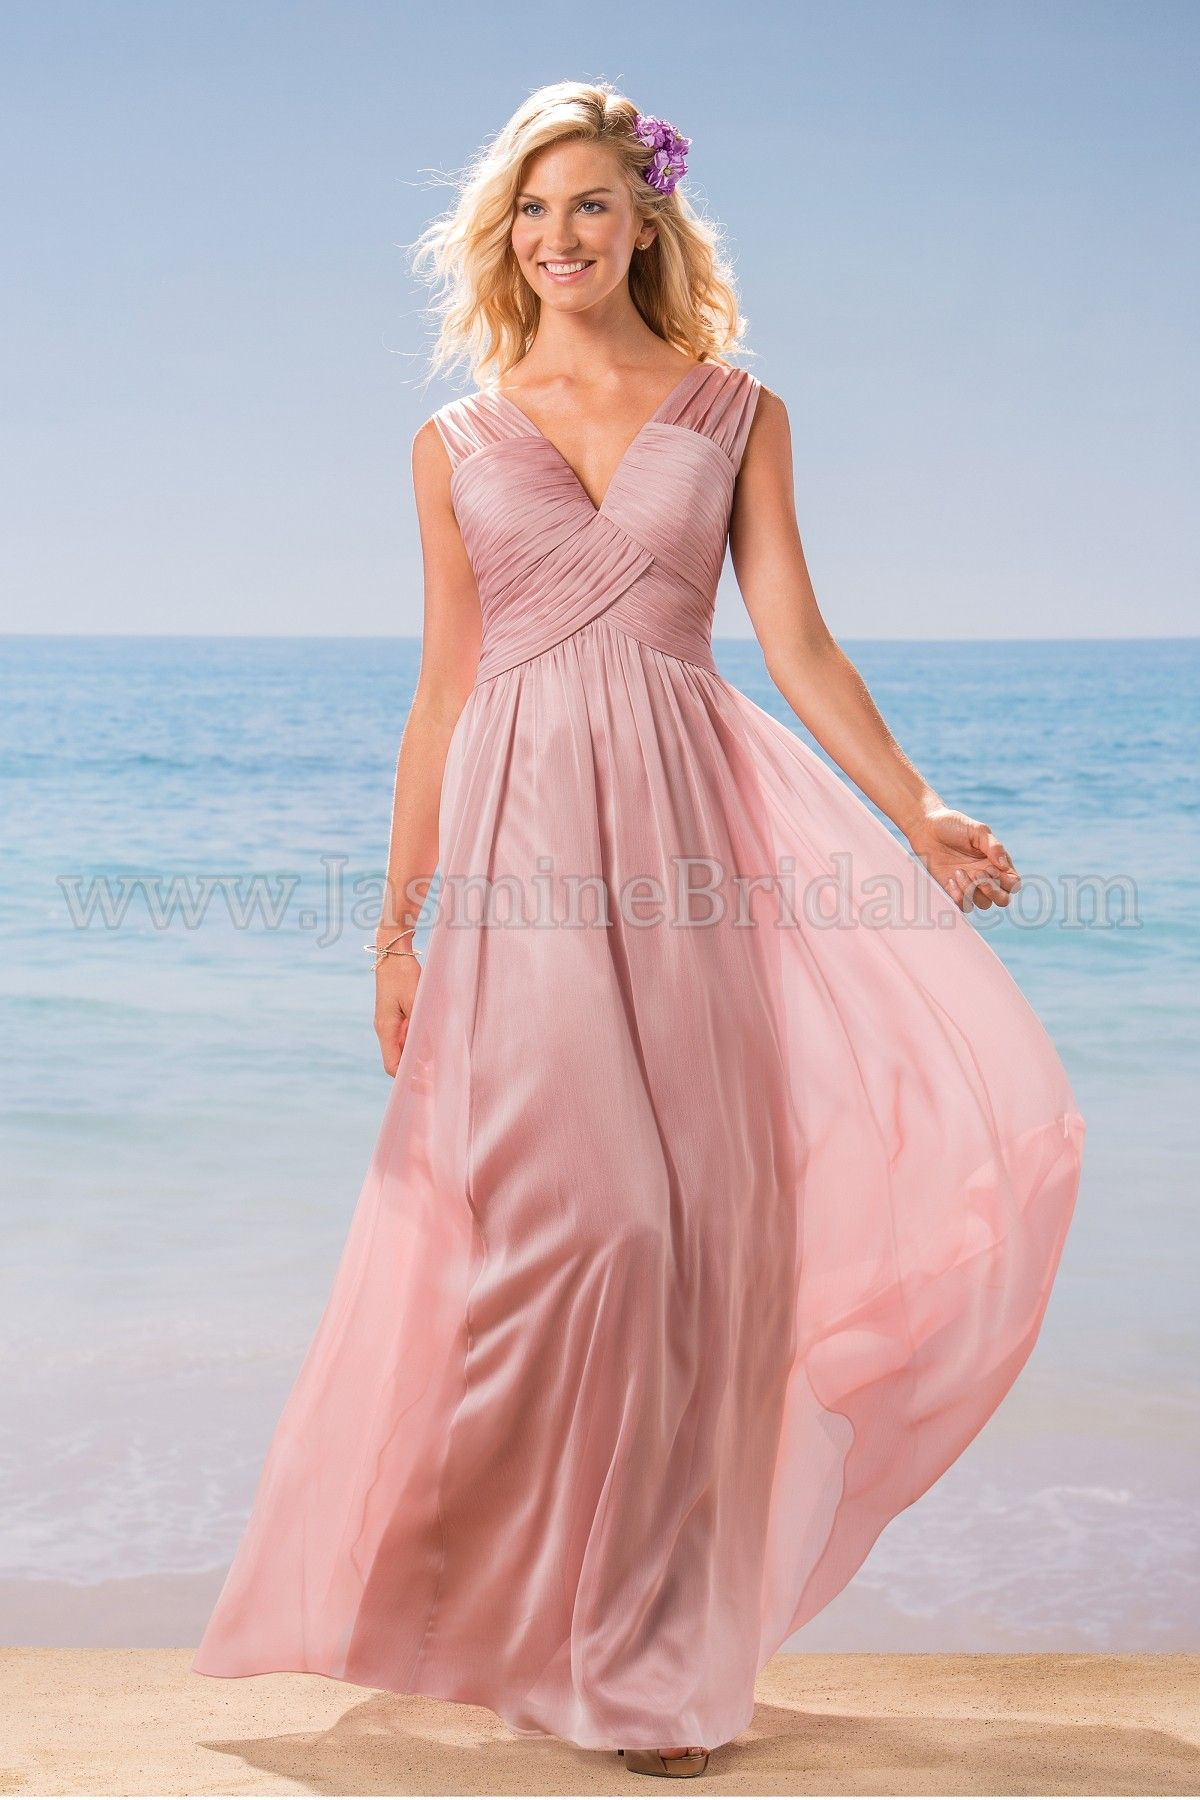 Jasmine bridal bridesmaid dress belsoie style l184012 in misty jasmine bridal bridesmaid dress belsoie style l184012 in misty pink ombrellifo Images